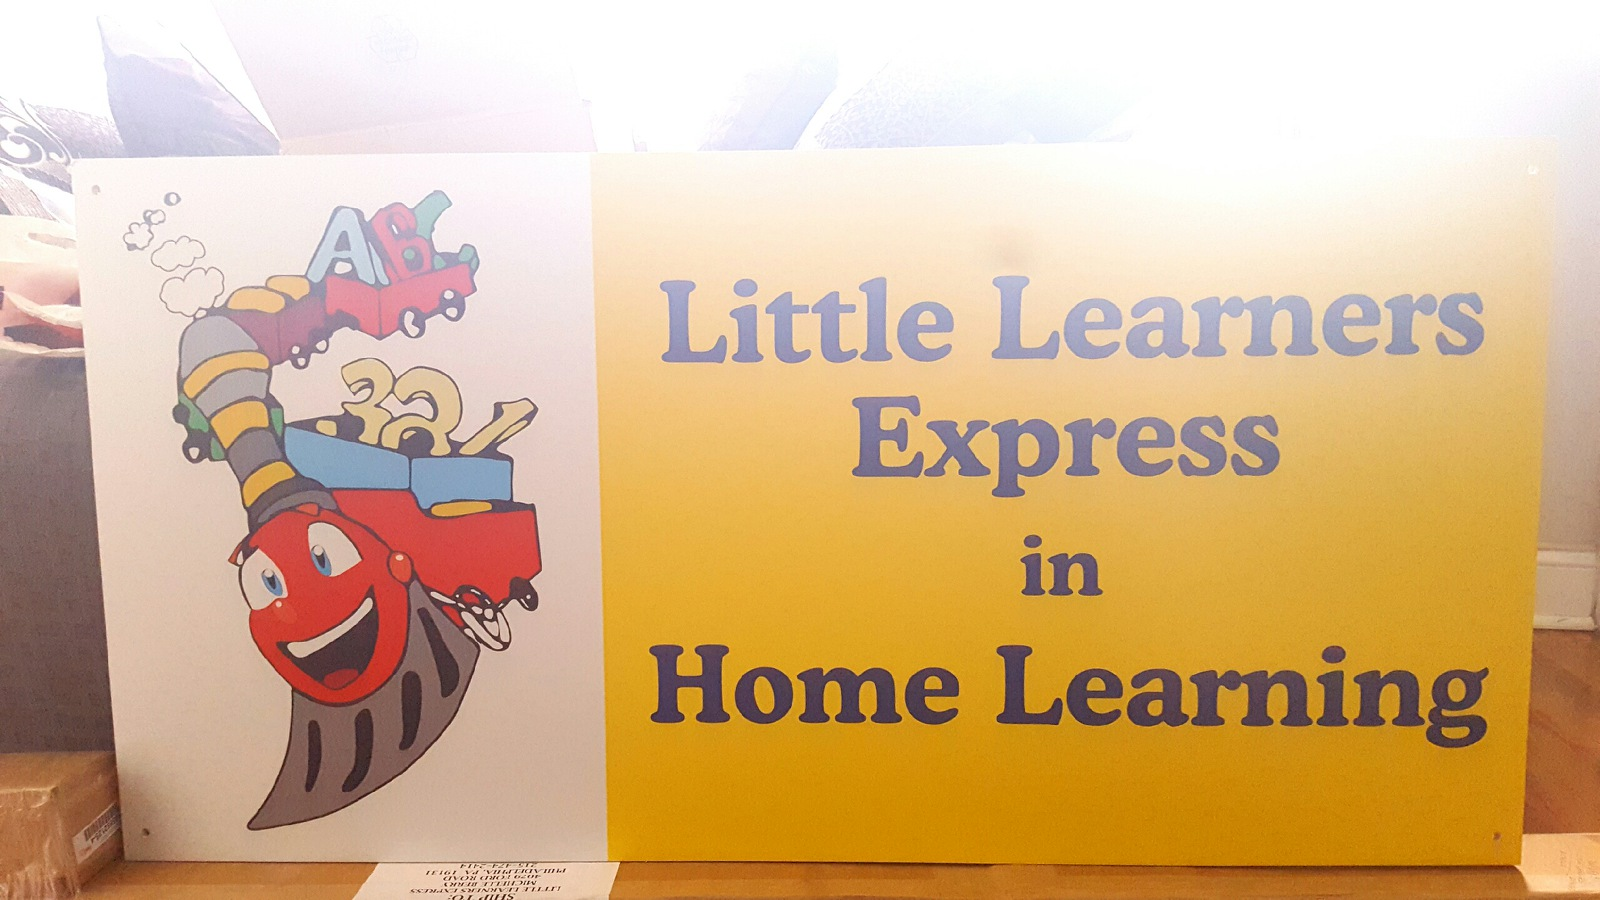 LITTLE LEARNERS EXPRESS